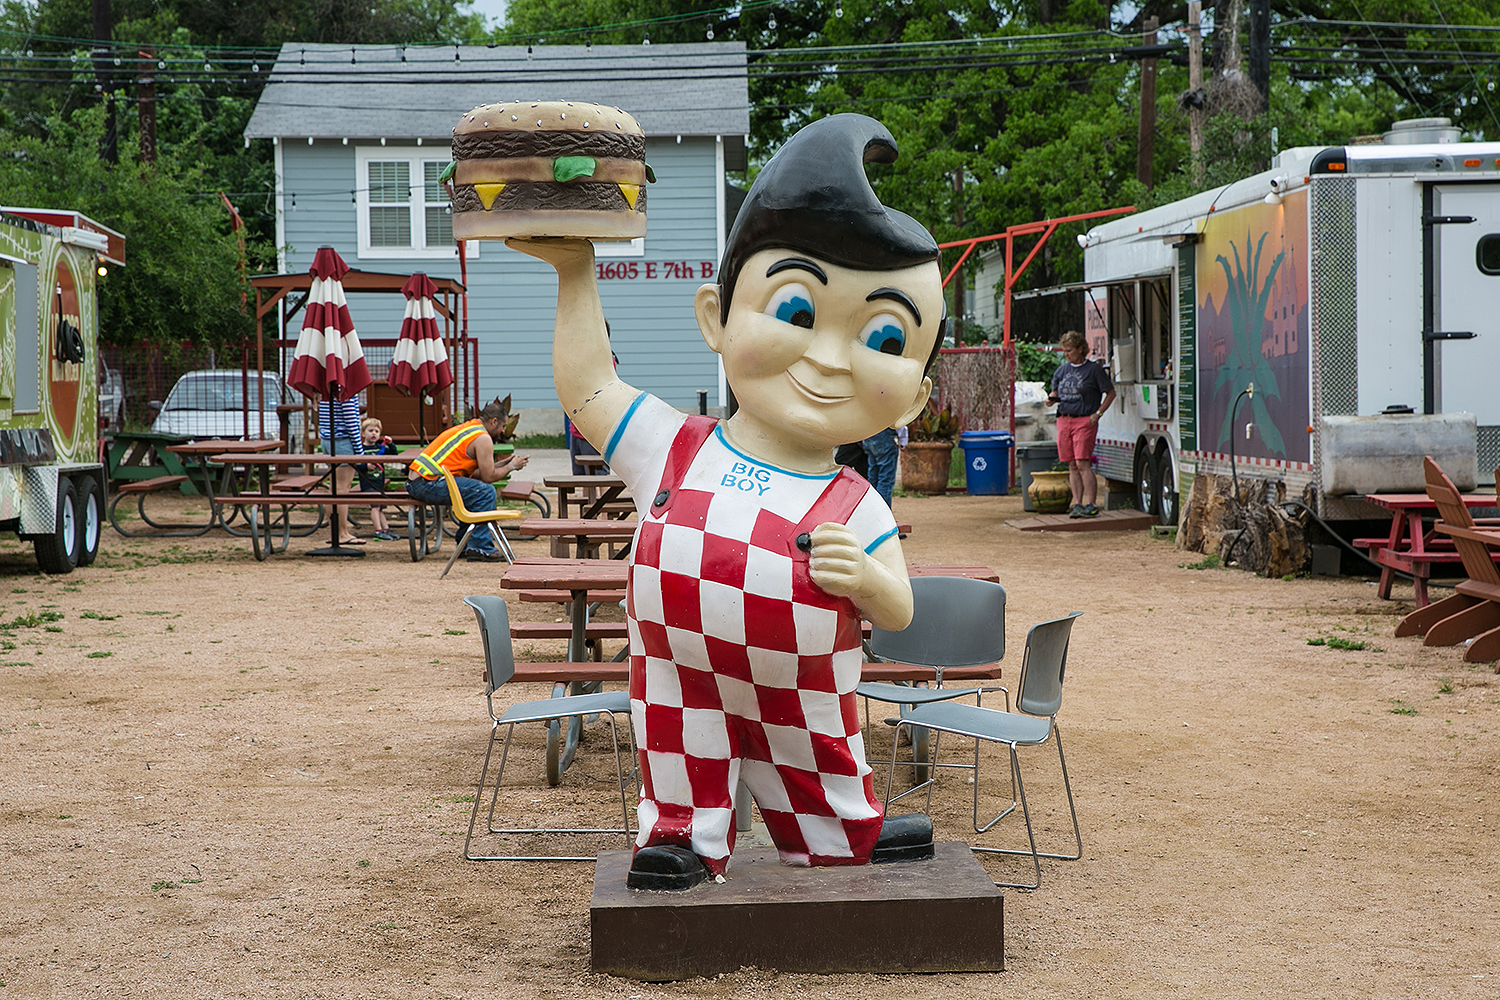 Big Boy burger mascot